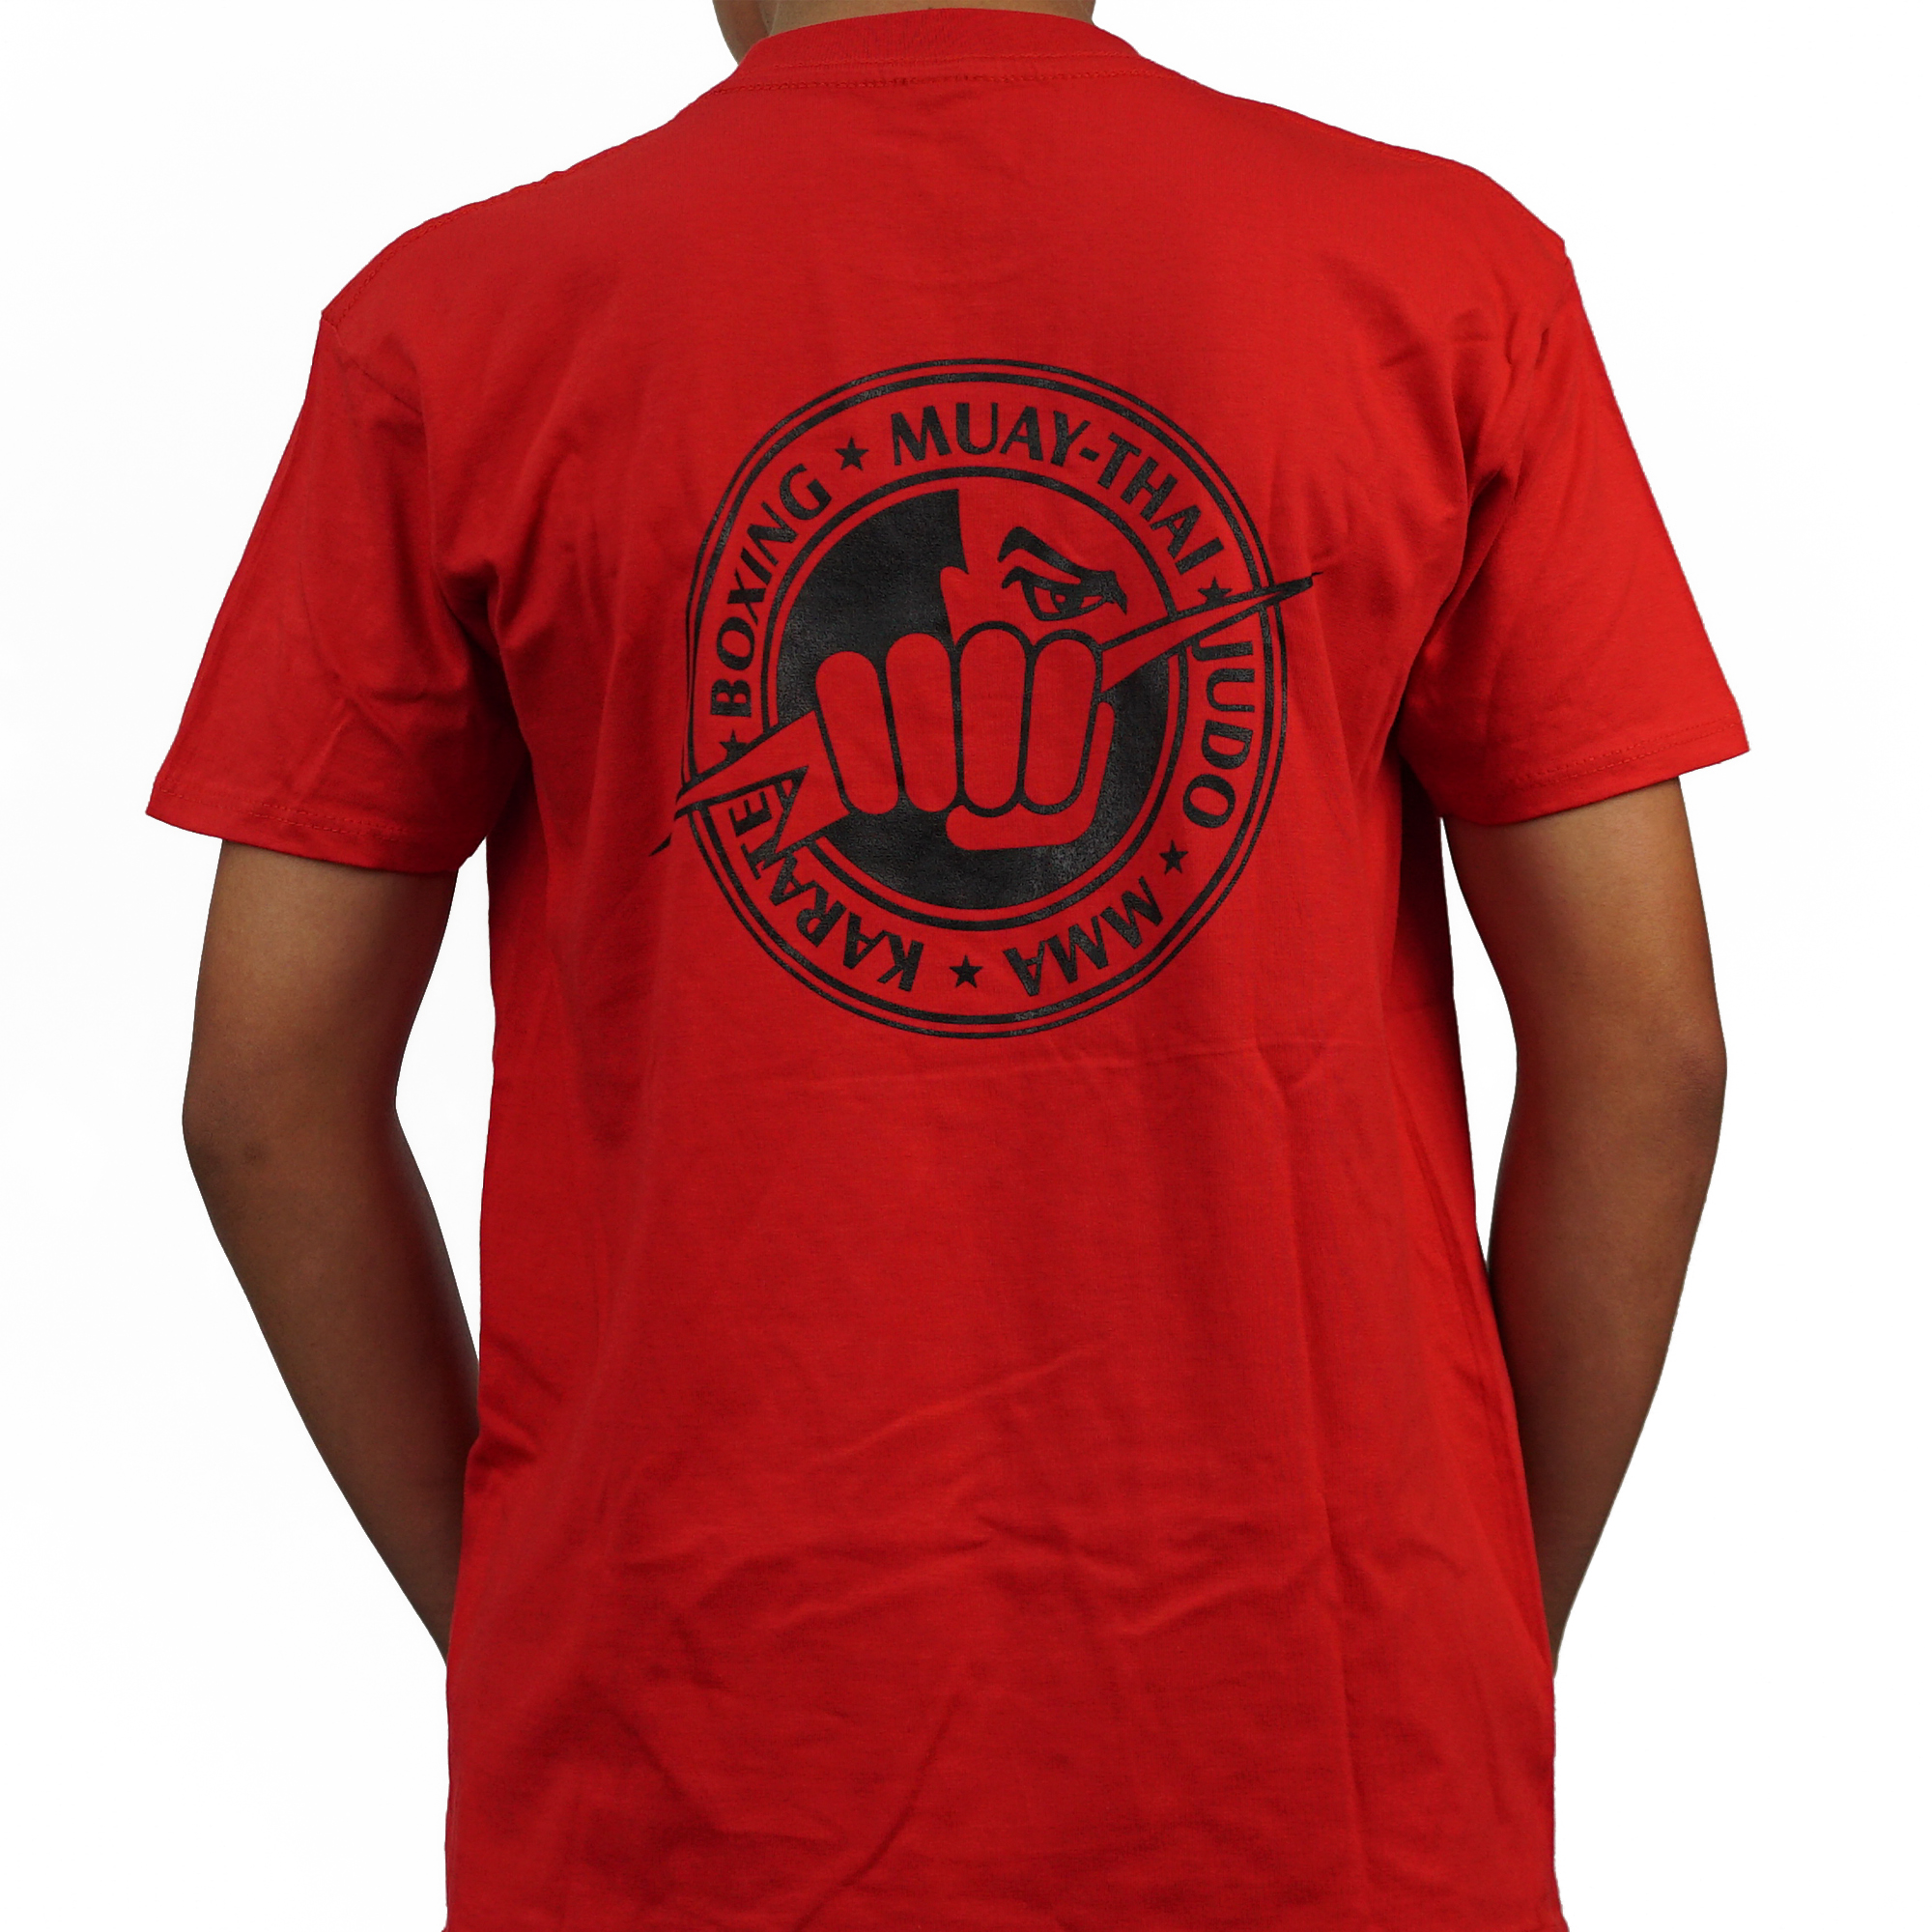 Glendale Fighting Club Shirt - Red w/ Black Writing & Logo